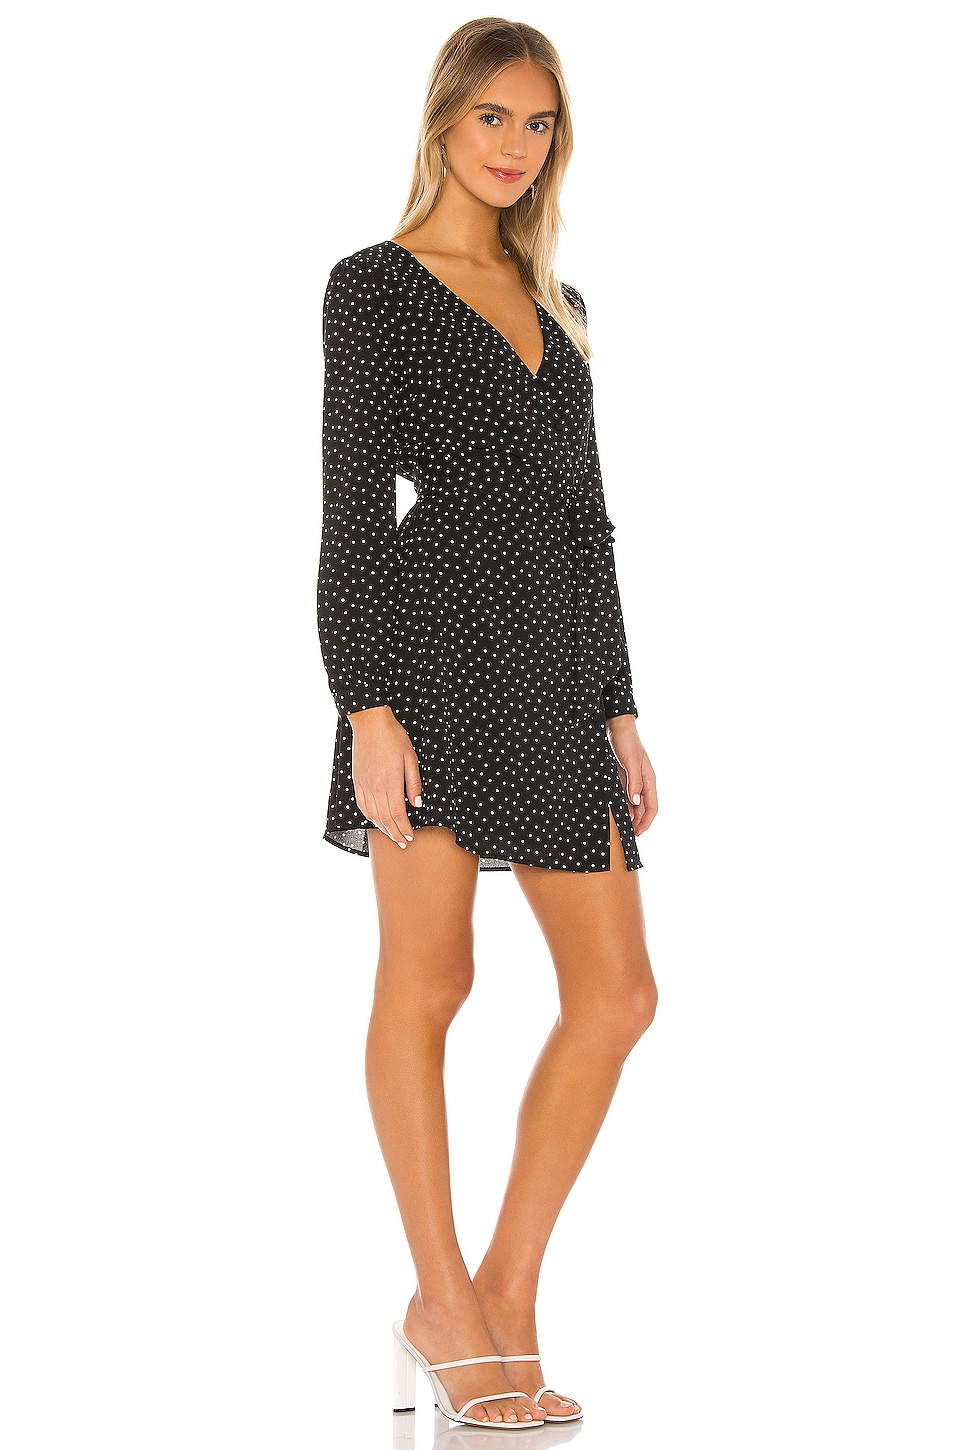 Vintage Scatter Dot Dress, view 2, click to view large image.